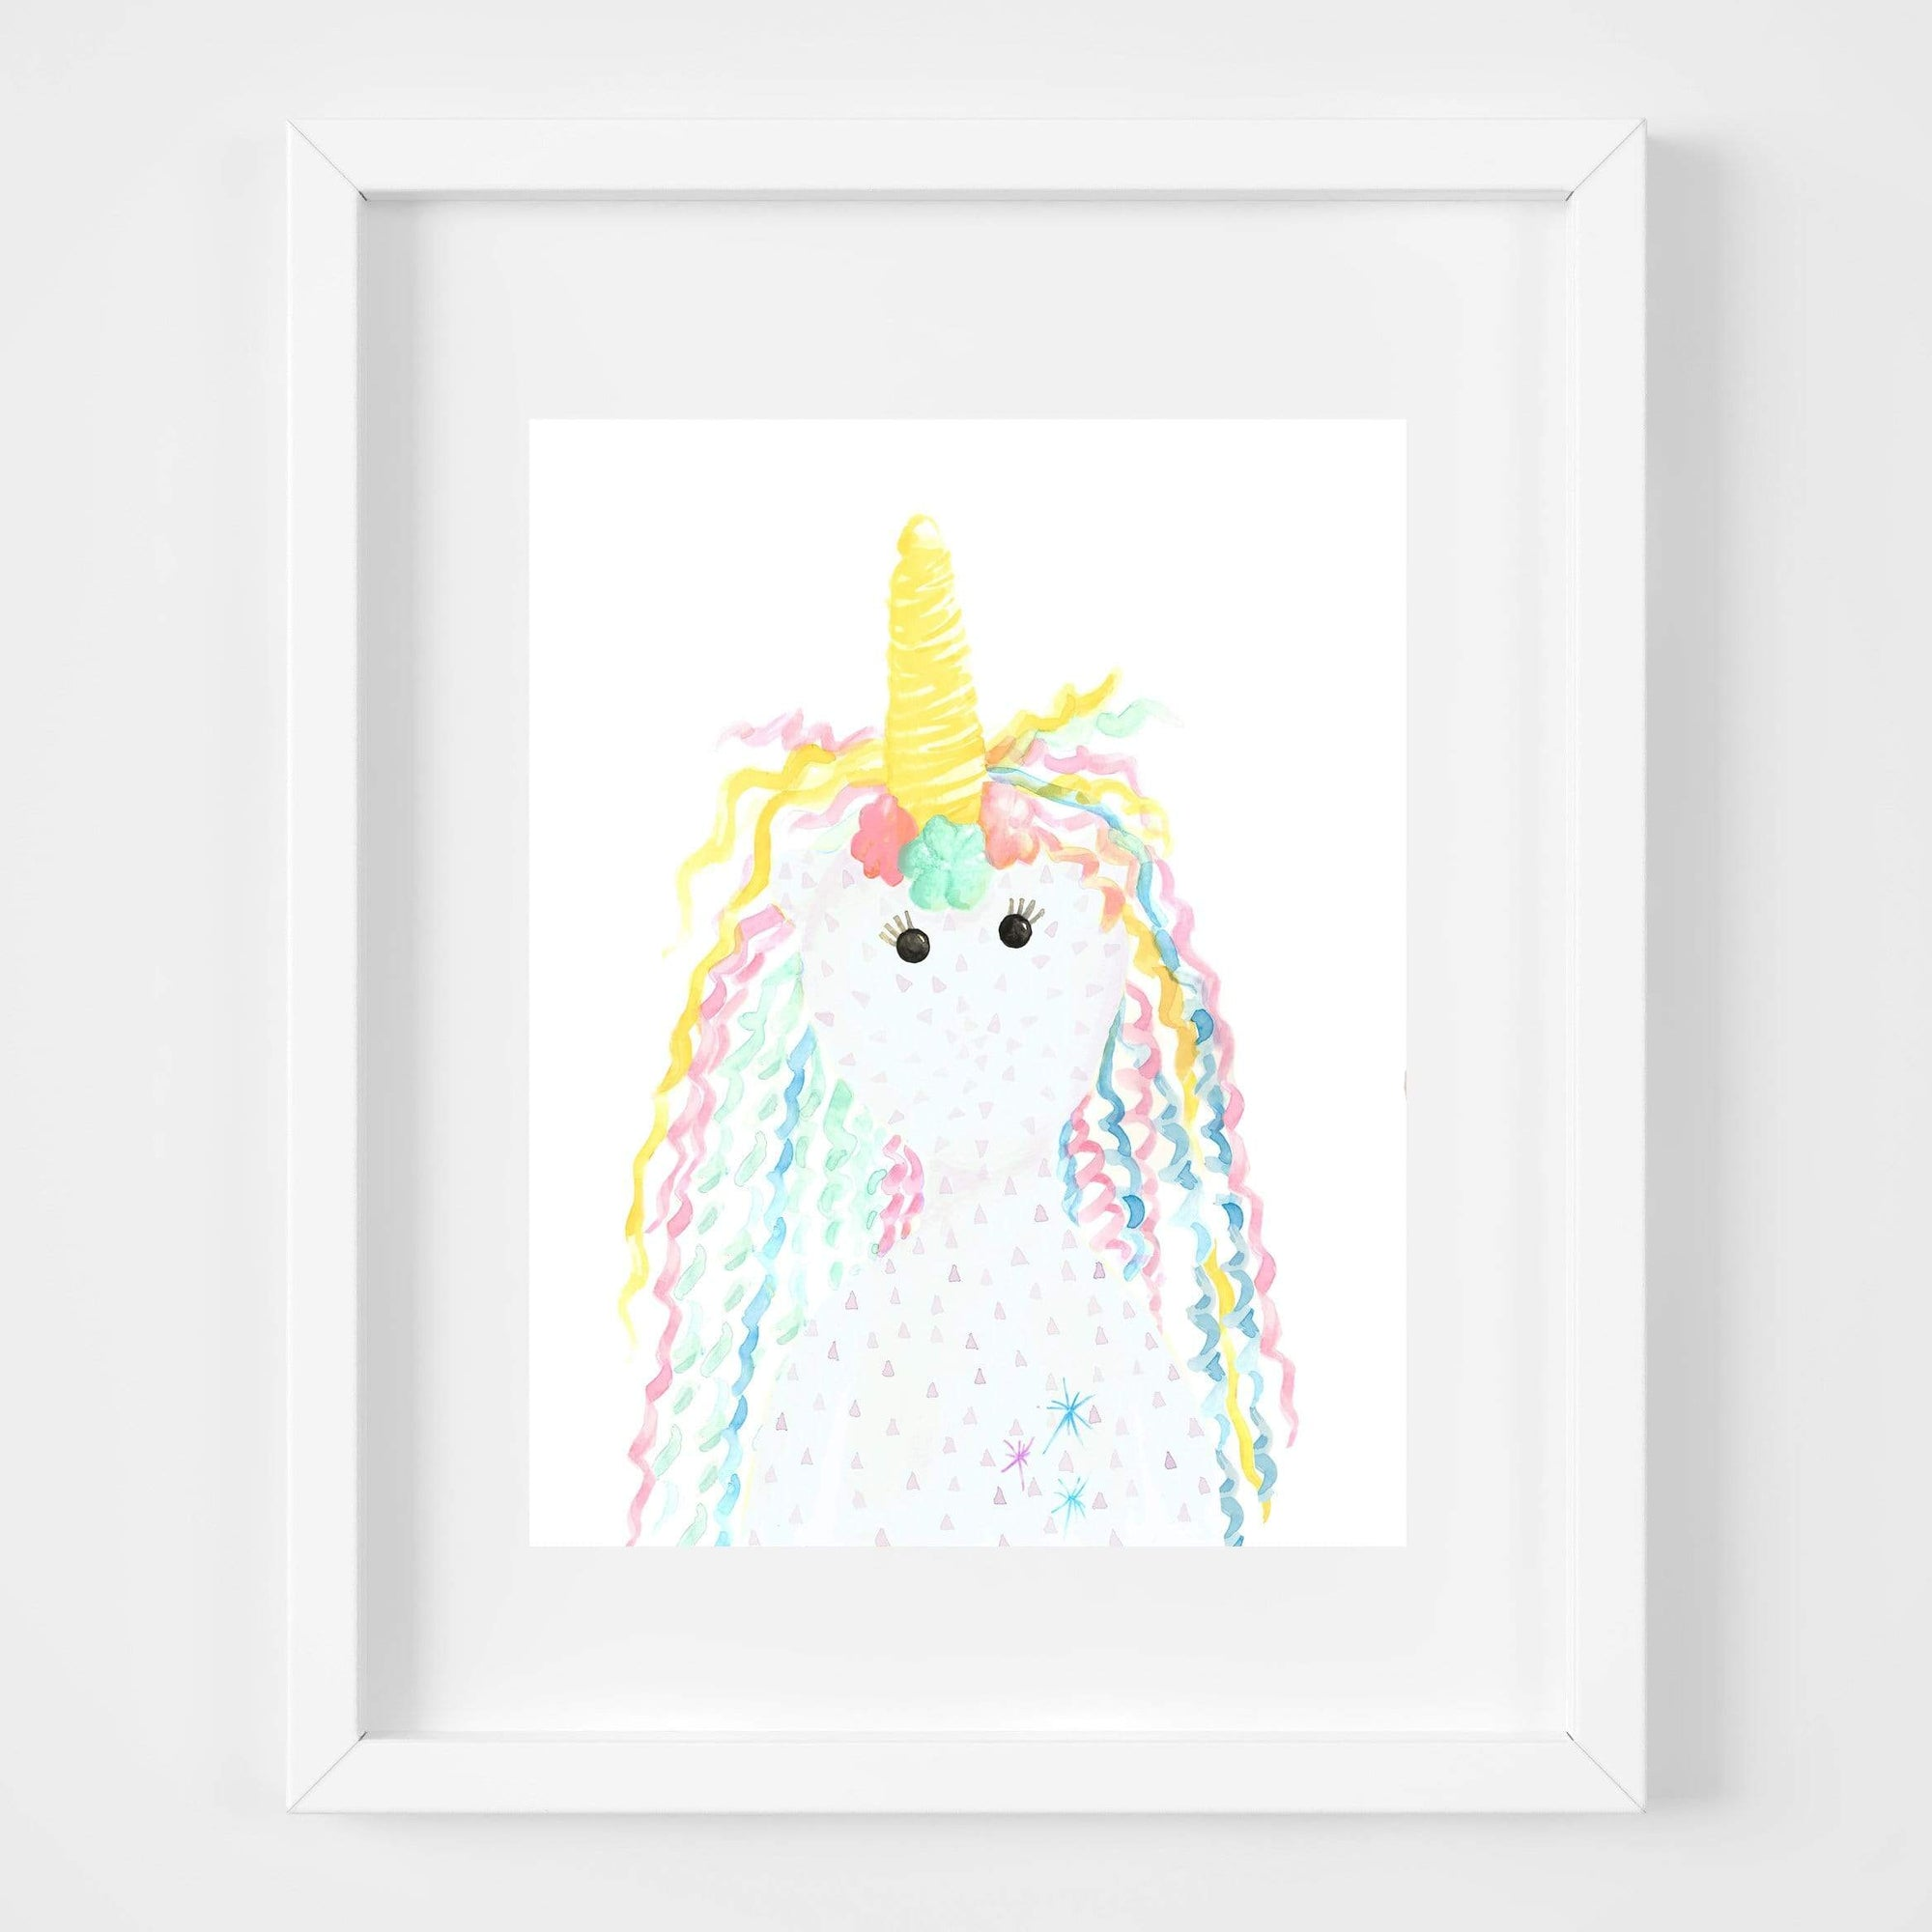 bebemoss.com Rose the unicorn print handmade by moms  gifts with purpose